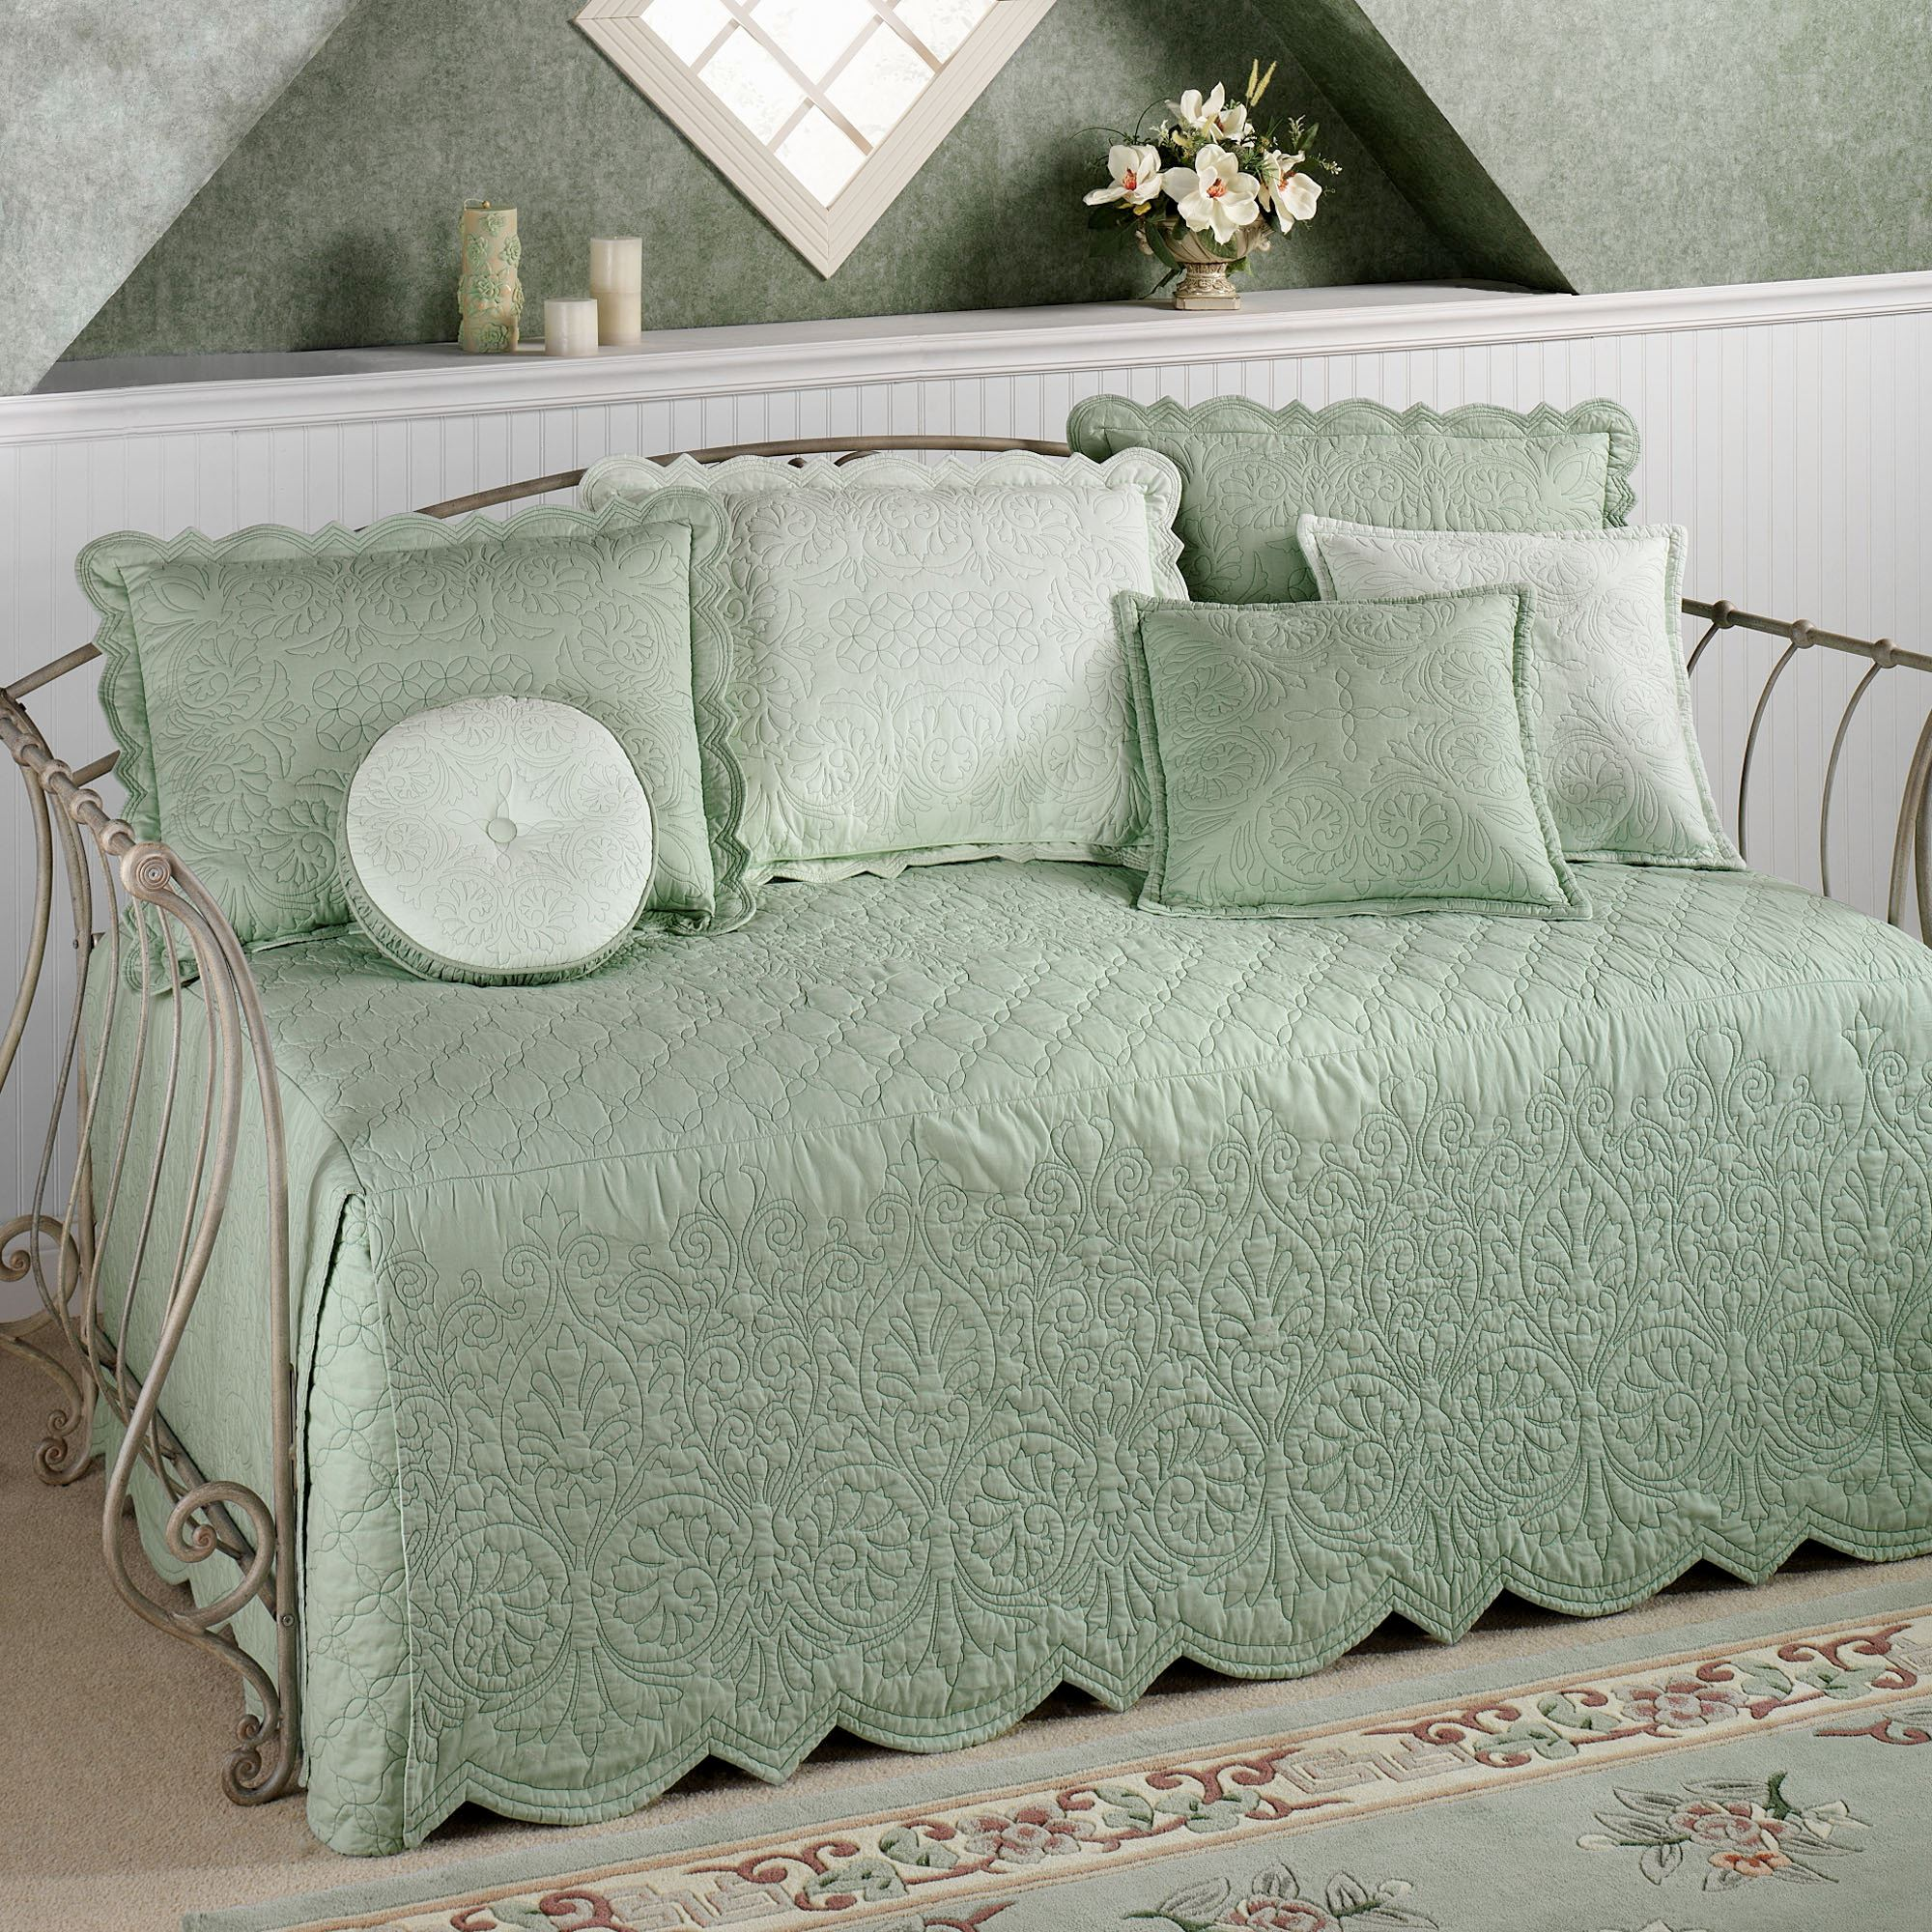 intrigue p daybed bedding flounce chenille quilts ruffled set quilt